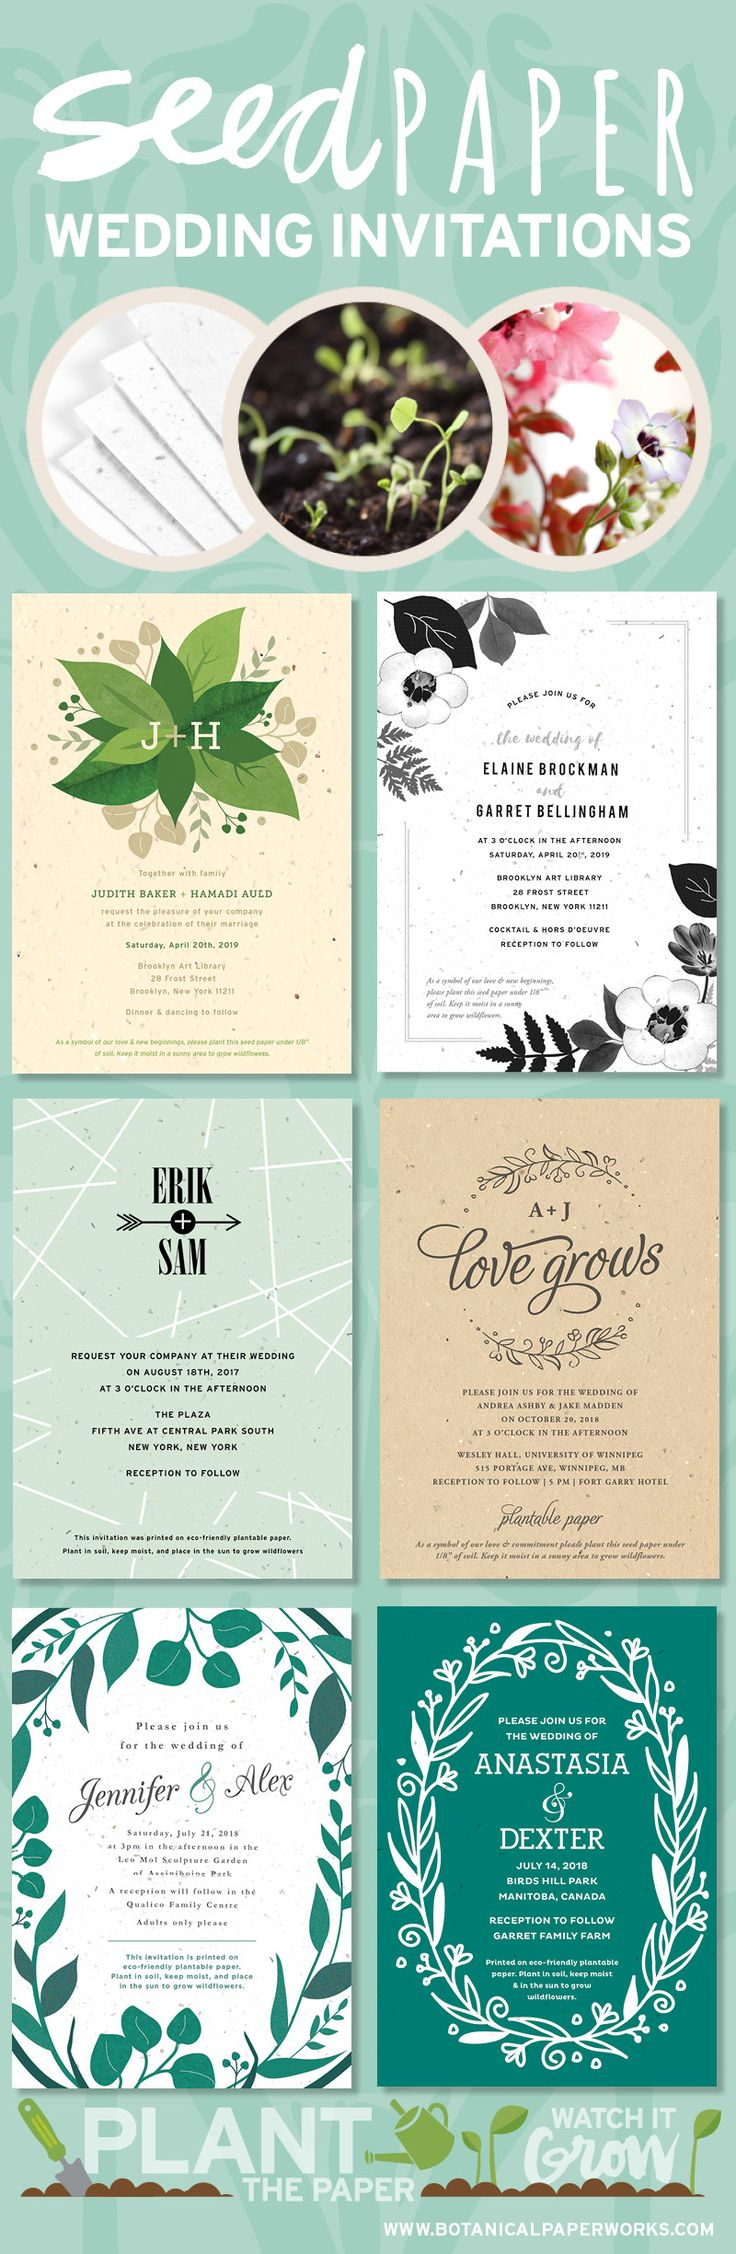 Stylish And Eco Friendly Wedding Invitations That Grow Into Flowers Or  Herbs Instead Of Leaving